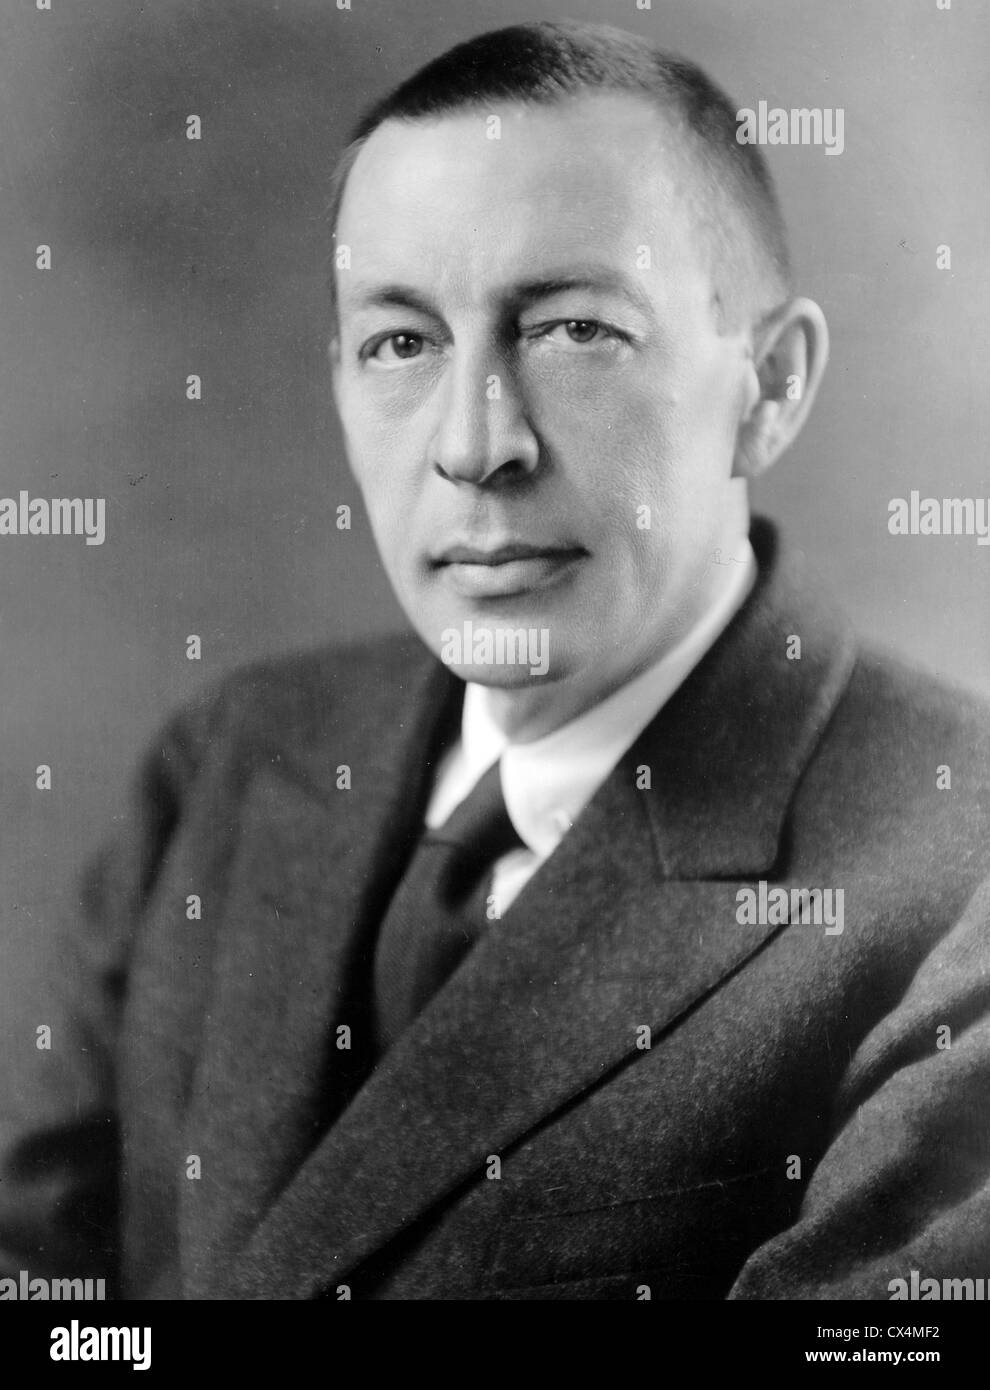 Rachmaninoff, Sergei Vasilievich Rachmaninoff, Russian composer, pianist, and conductor. - Stock Image